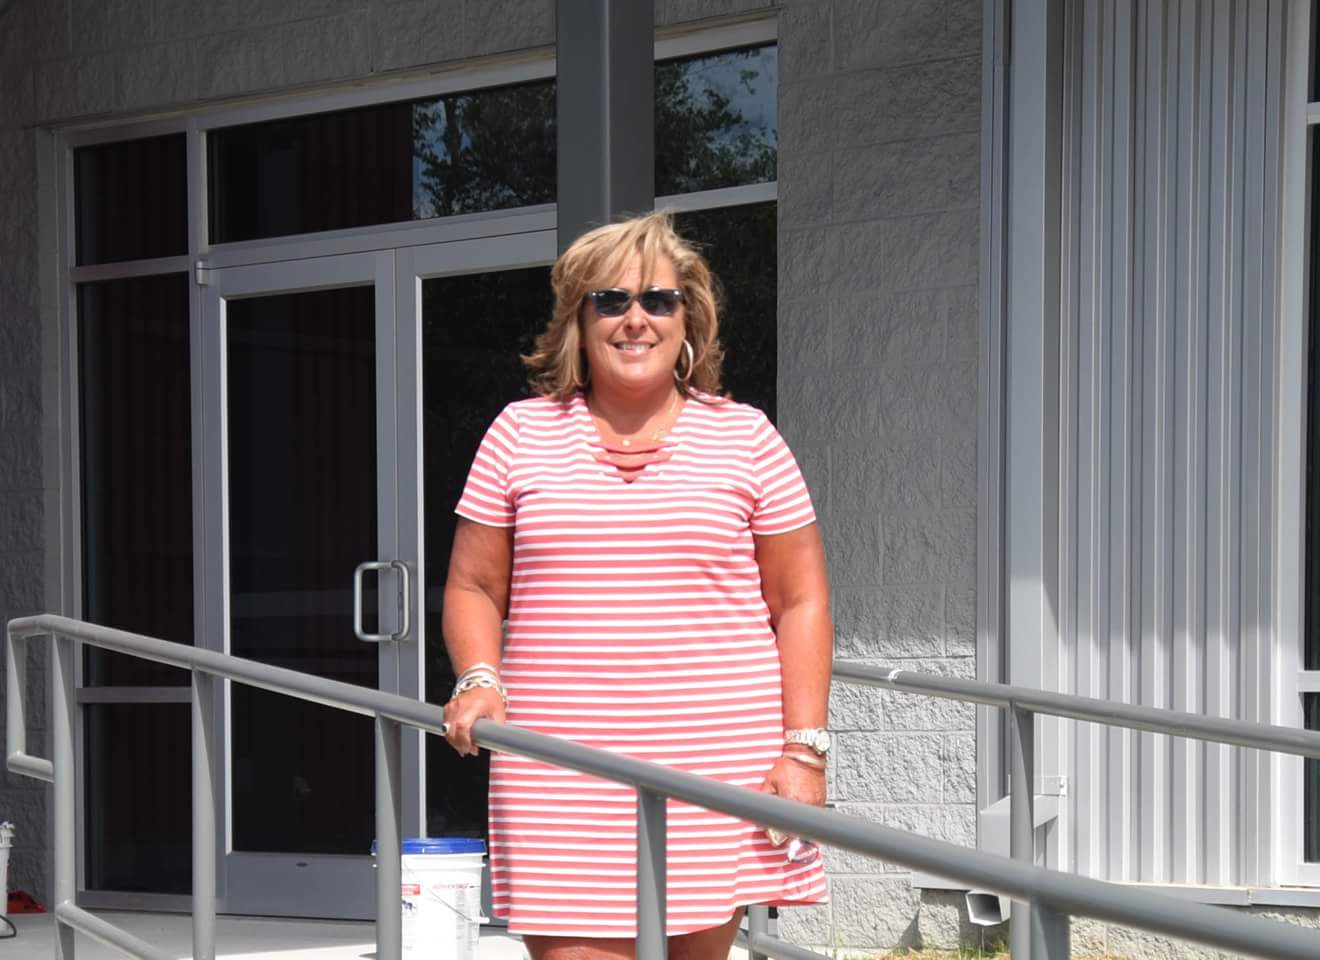 """Tammy Kelly, Lenoir County Cooperative Extension Director, poses at the front of the rebuilt office. Photo by William 'Bud"""" Hardy / Neuse News"""